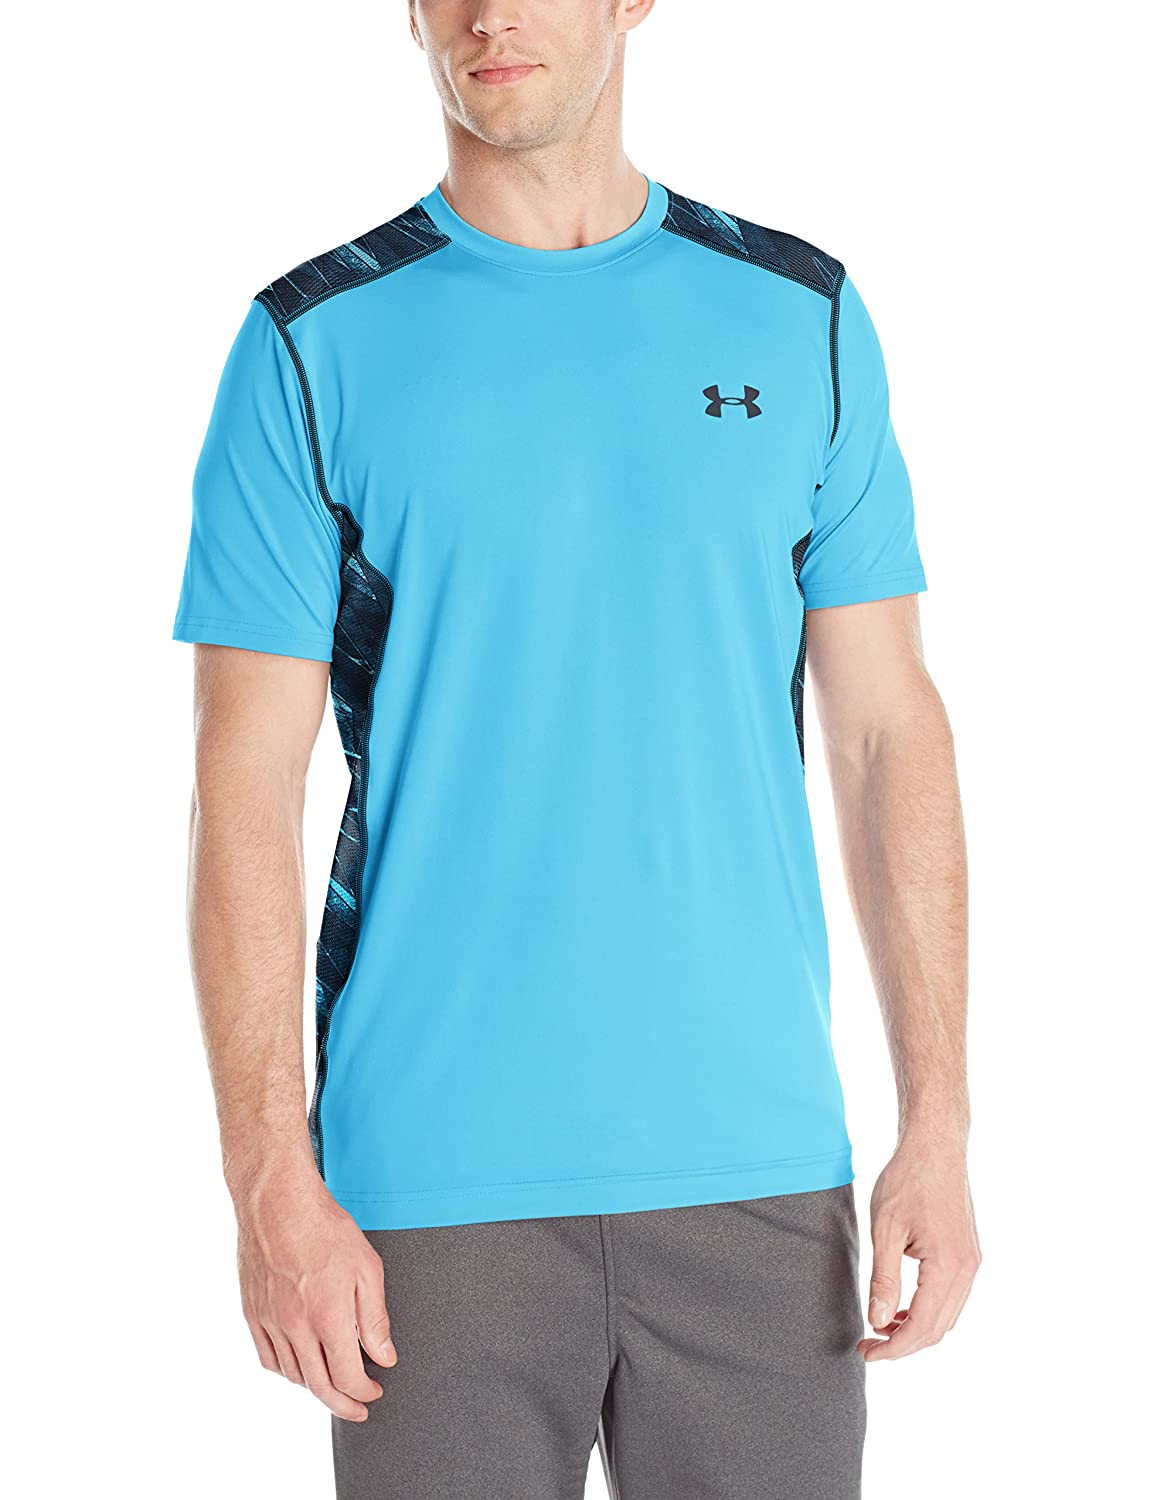 (アンダーアーマー) UNDER ARMOUR ヒットヒートギアSS(トレーニング/Tシャツ/MEN)[1257466] B016APQE1C XX-Large Tall|Meridian Blue/Anthracite Meridian Blue/Anthracite XX-Large Tall